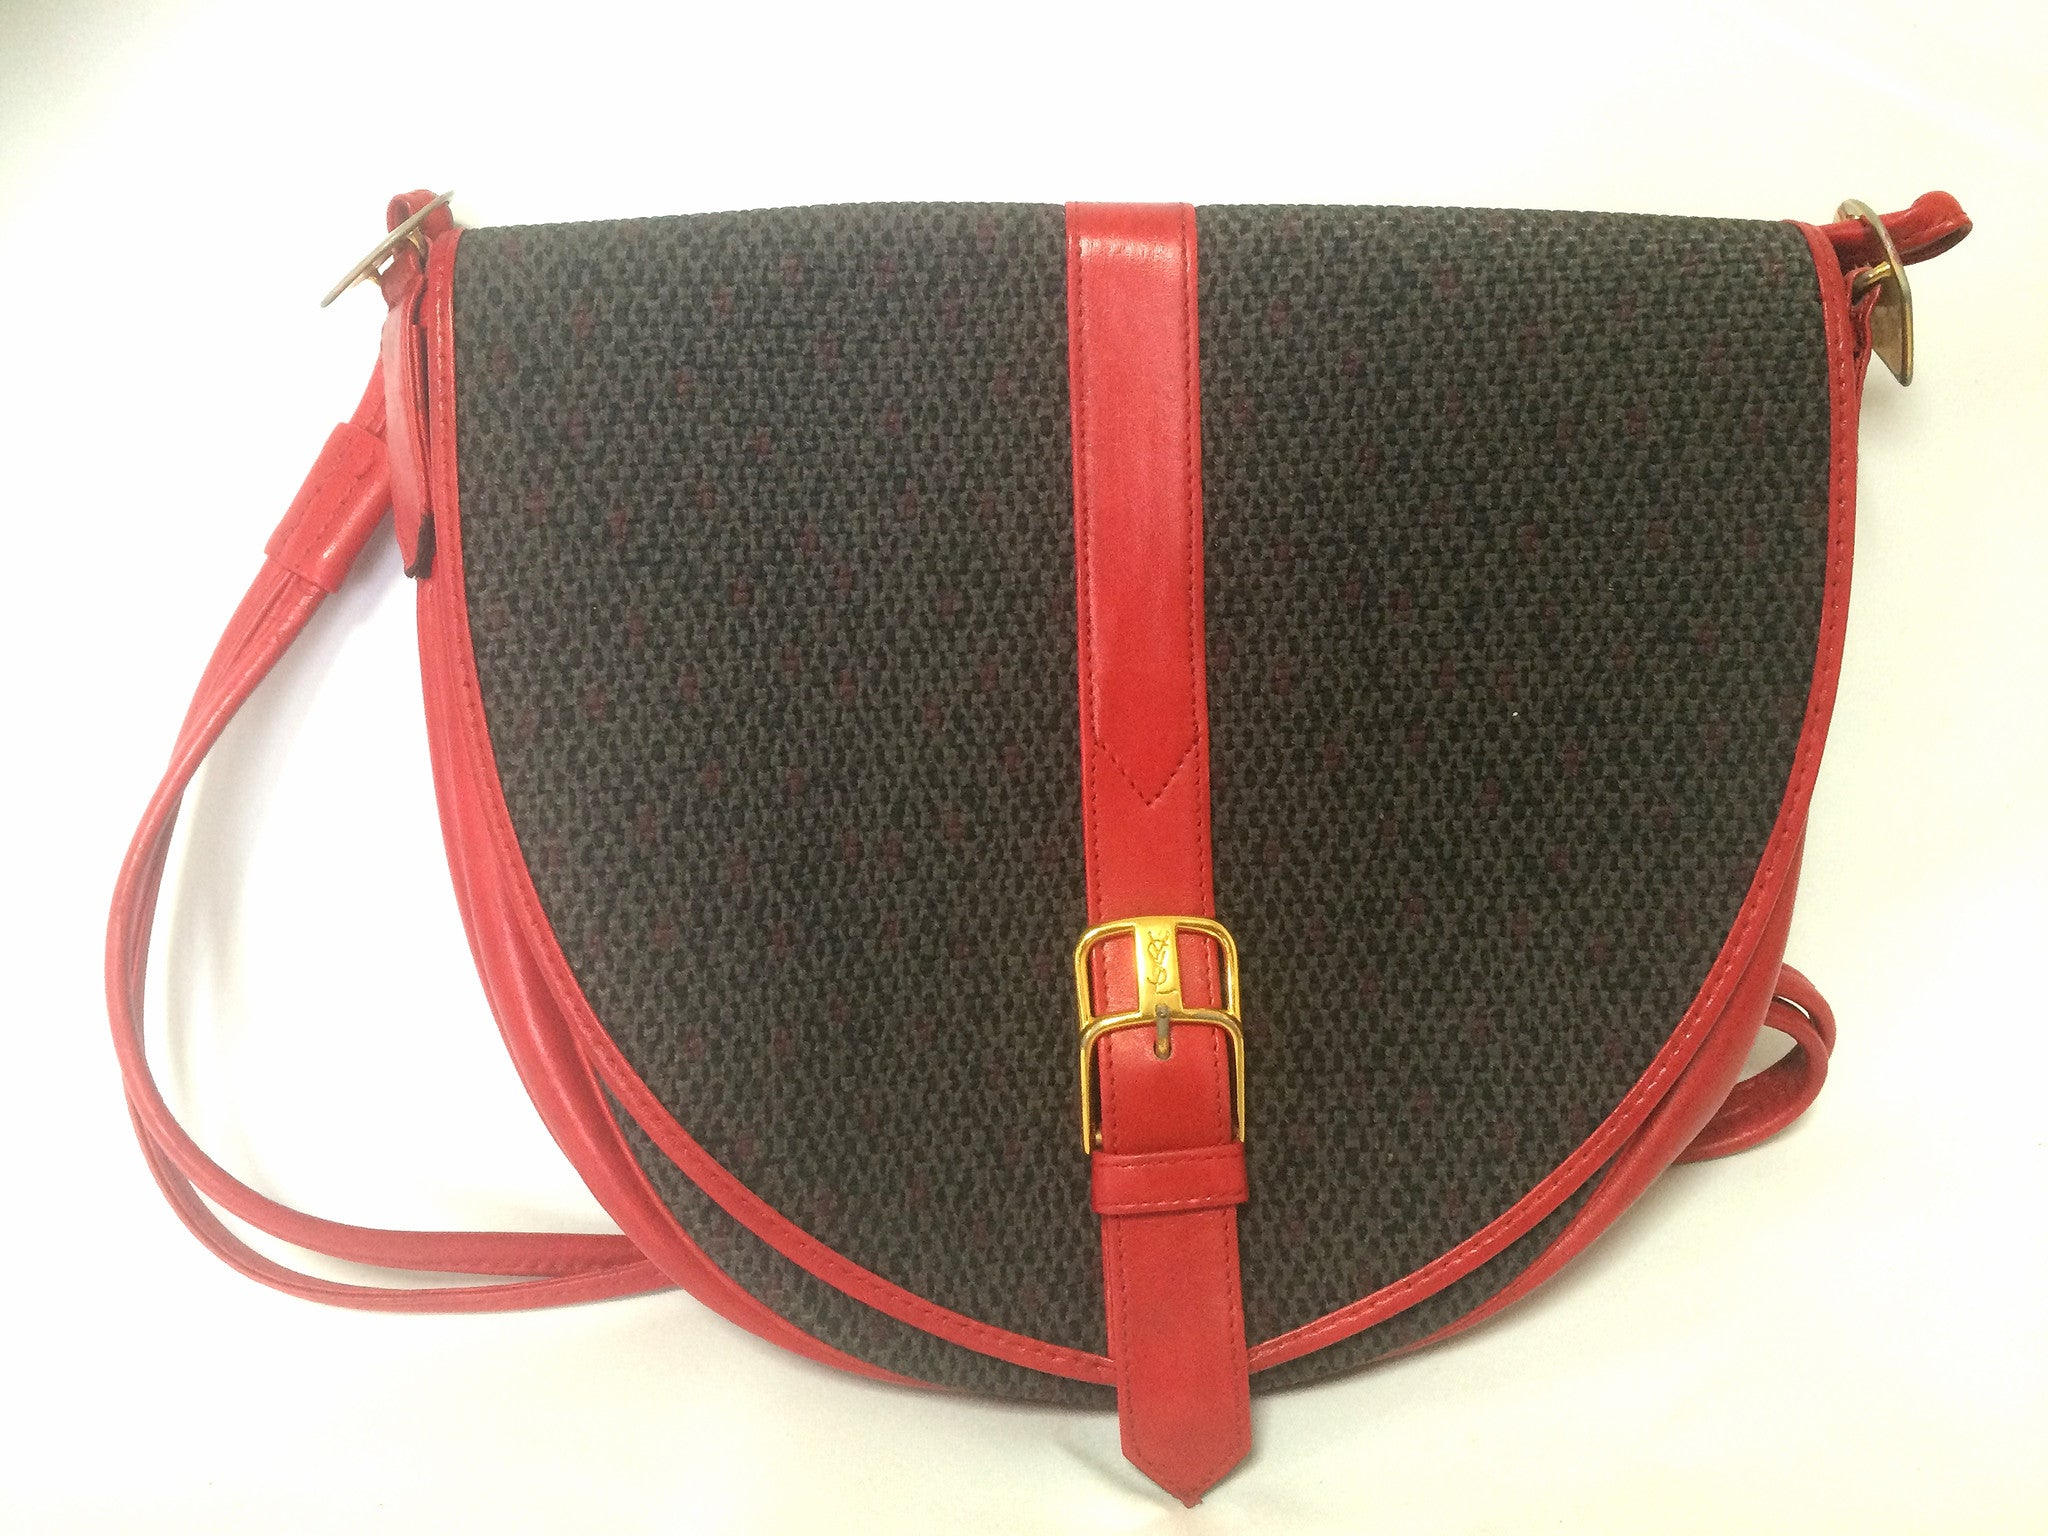 46bd25a029 Vintage Yves Saint Laurent oval navy shoulder bag with red leather shoulder  strap. Perfect daily